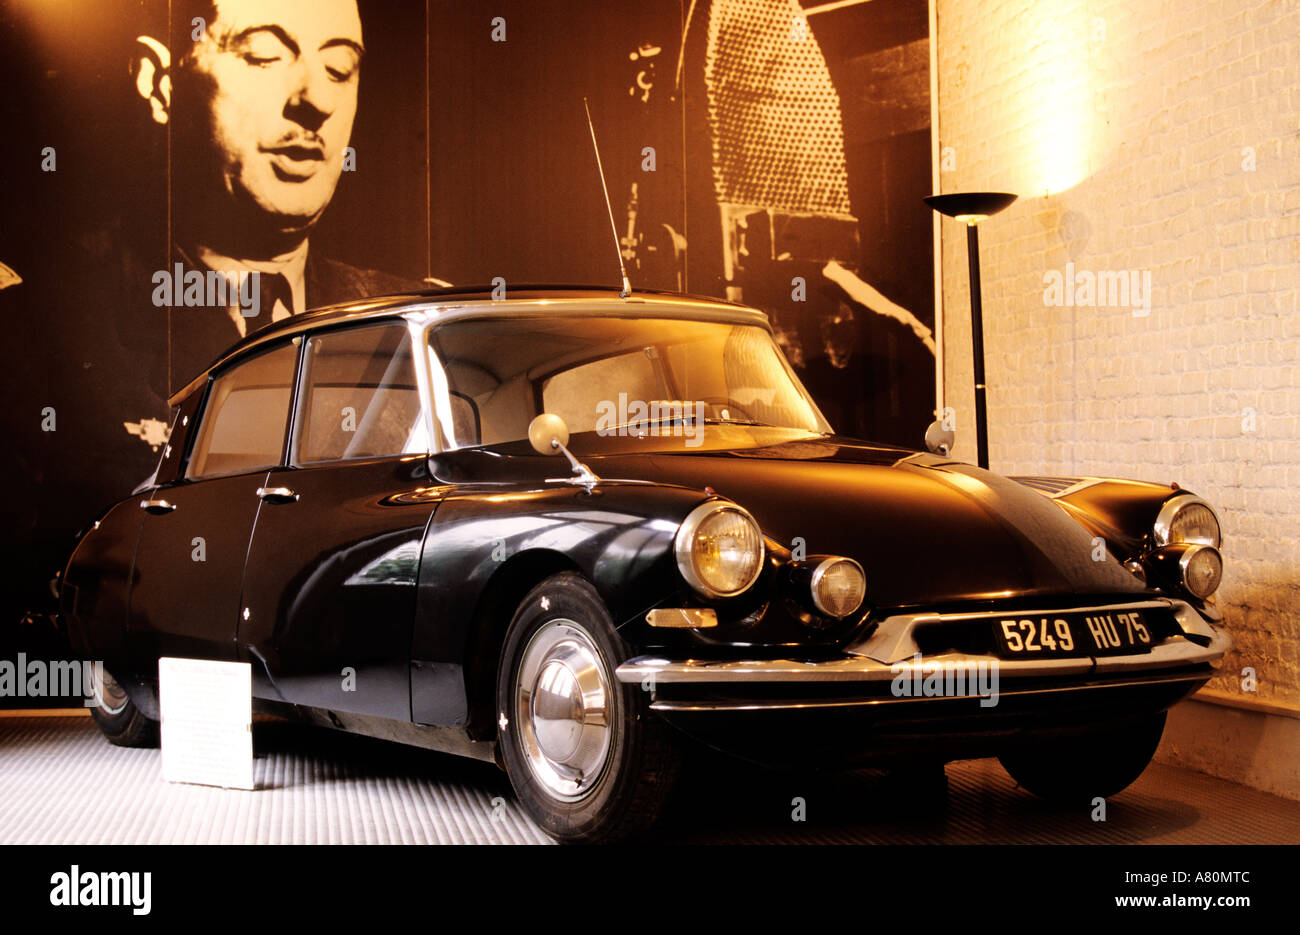 france nord lille charles de gaulle 39 s home museum citroen ds car stock photo royalty free. Black Bedroom Furniture Sets. Home Design Ideas